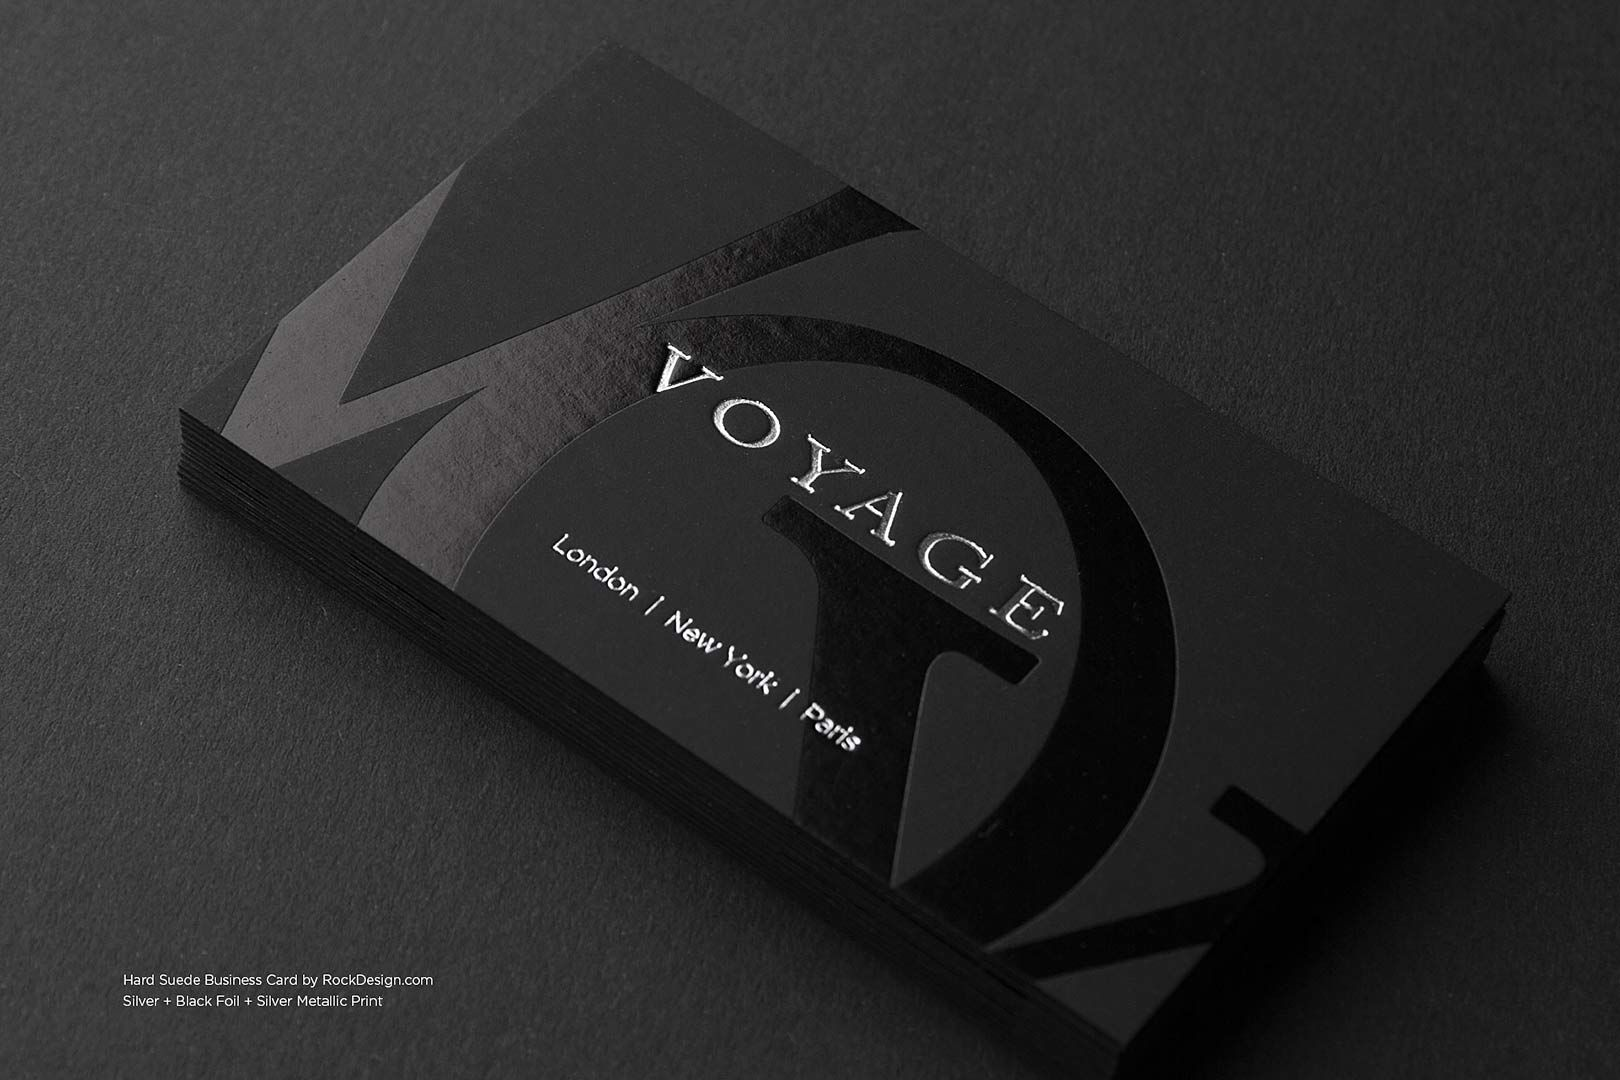 Hard suede business cards rockdesign luxury business card printing hard suede business cards rockdesign luxury business card printing colourmoves